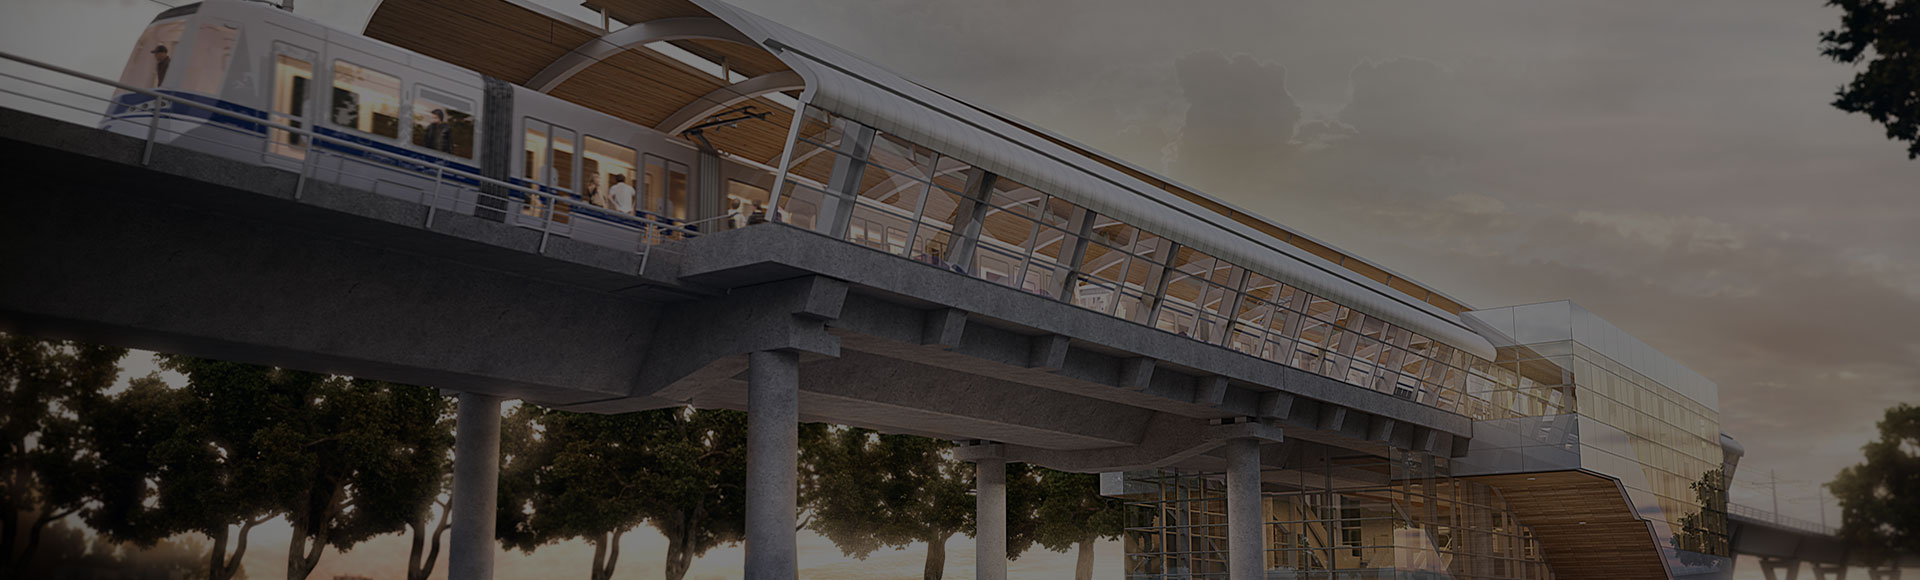 Edmonton Valley Line LRT Project